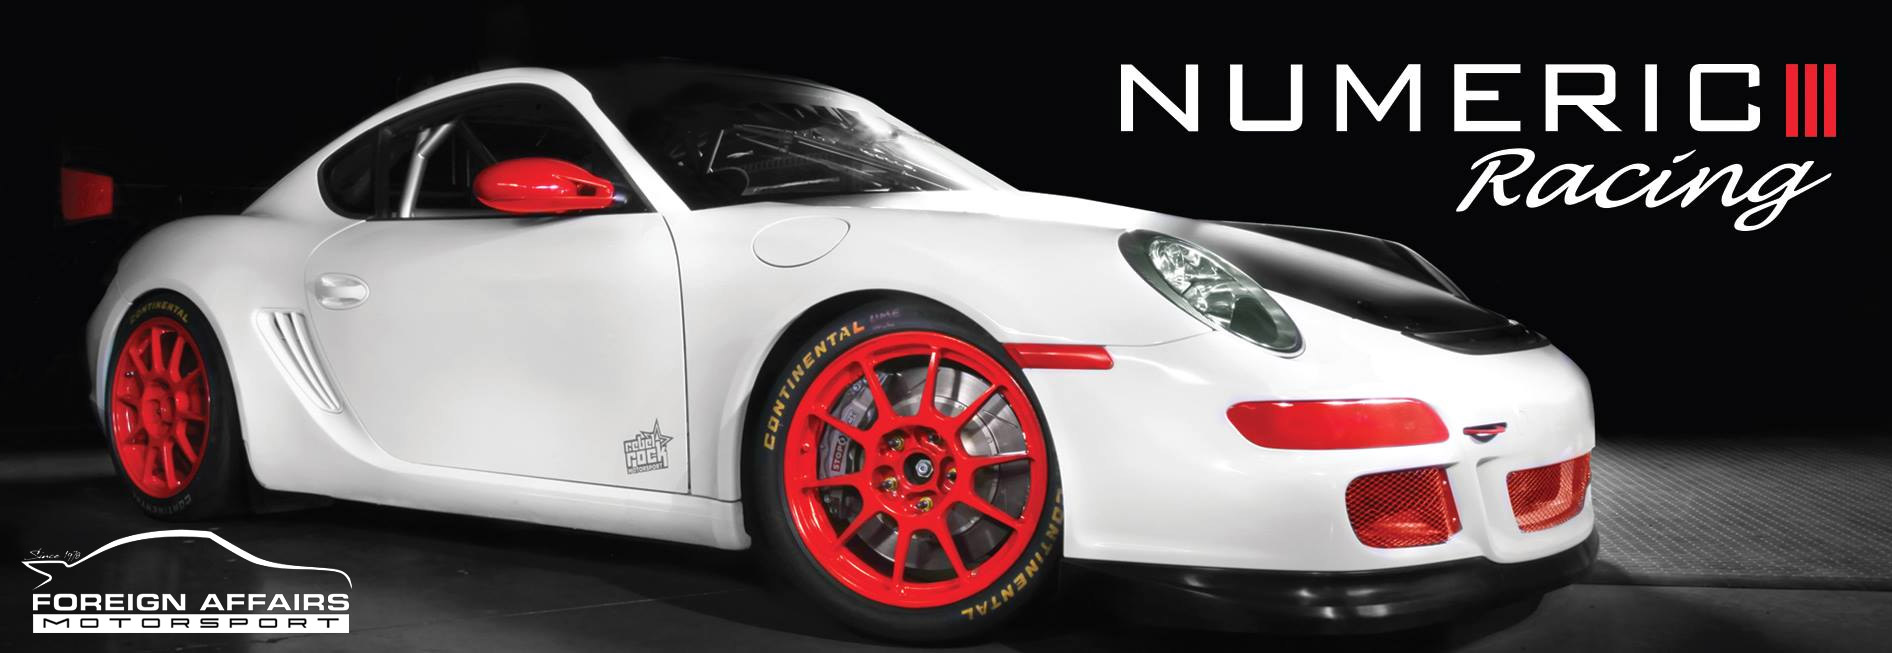 numeric racing parts